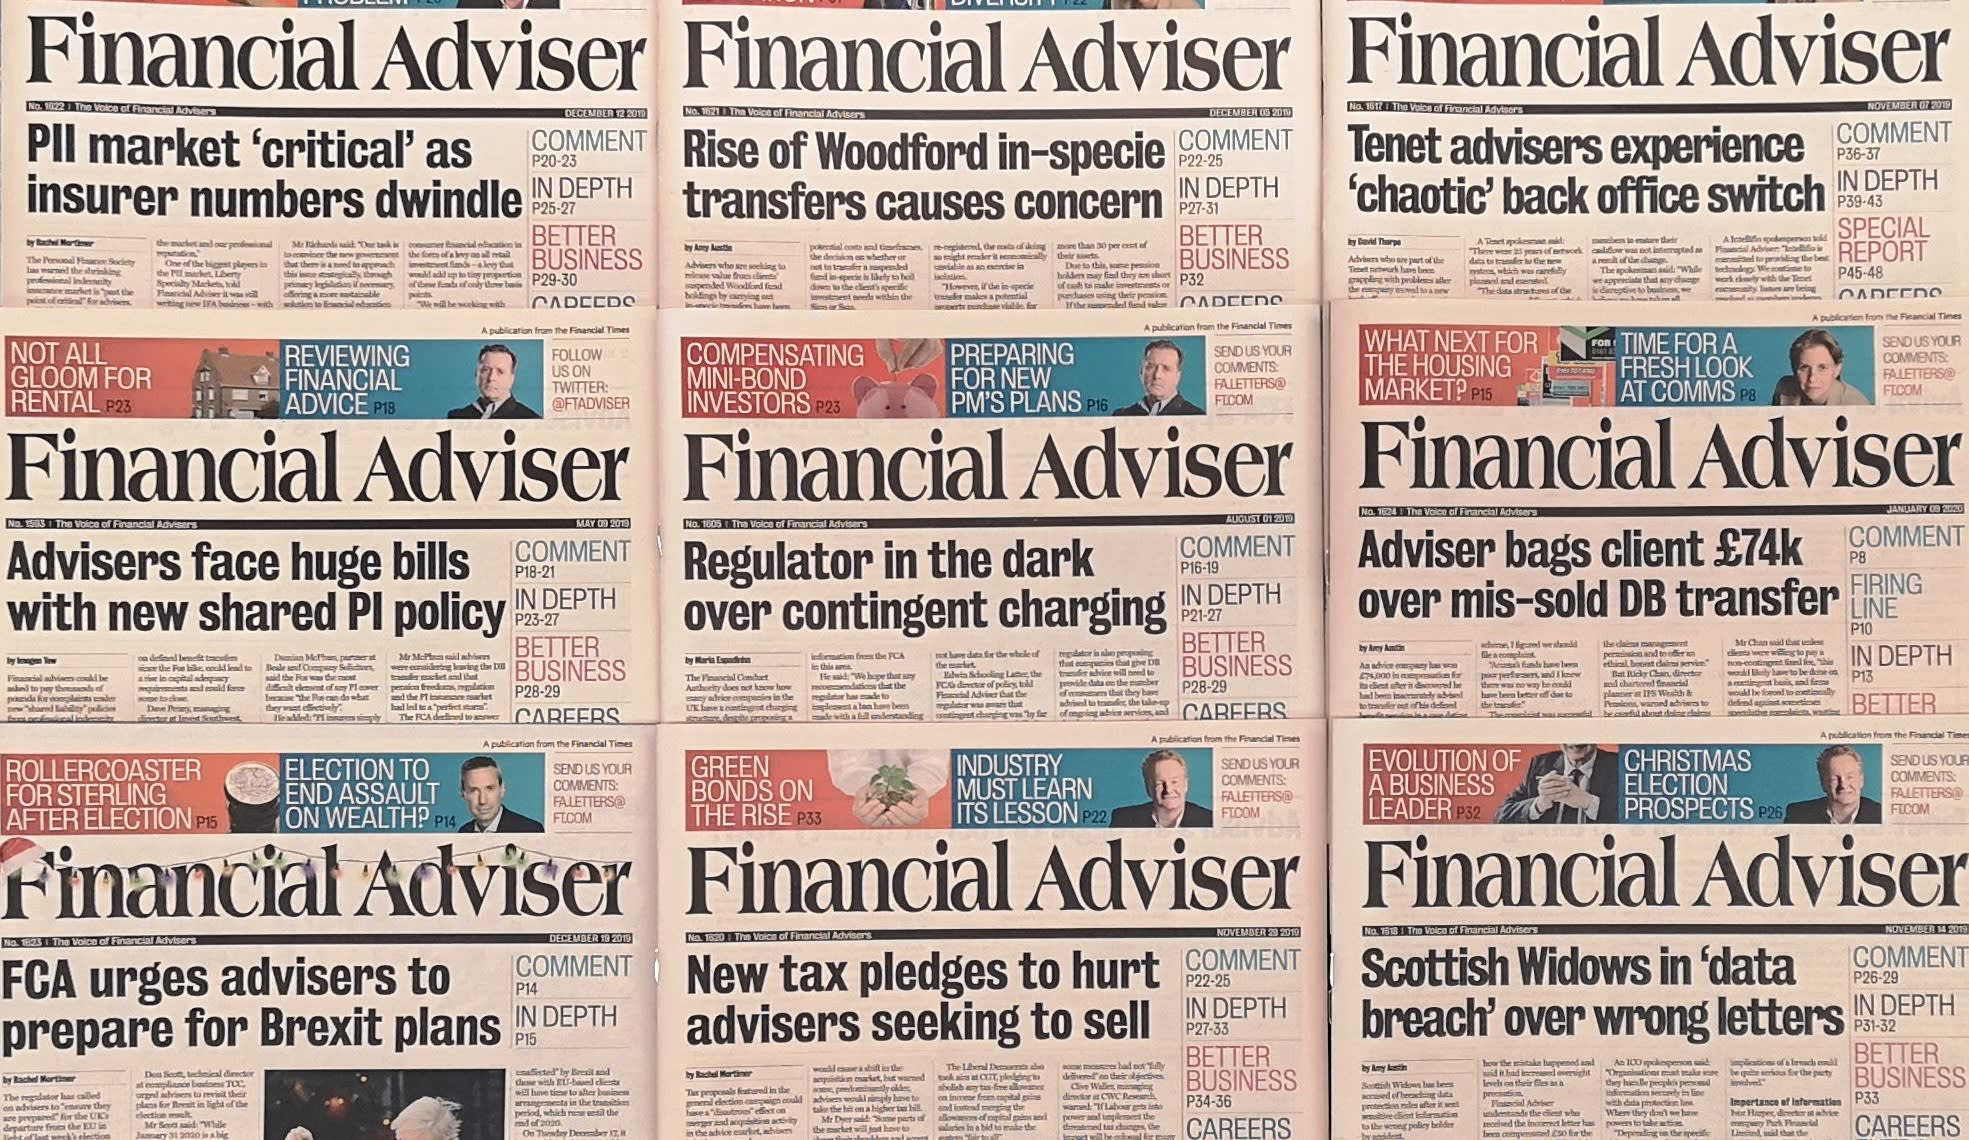 Chancellor quits & advisers ditch Sanlam: the week in news